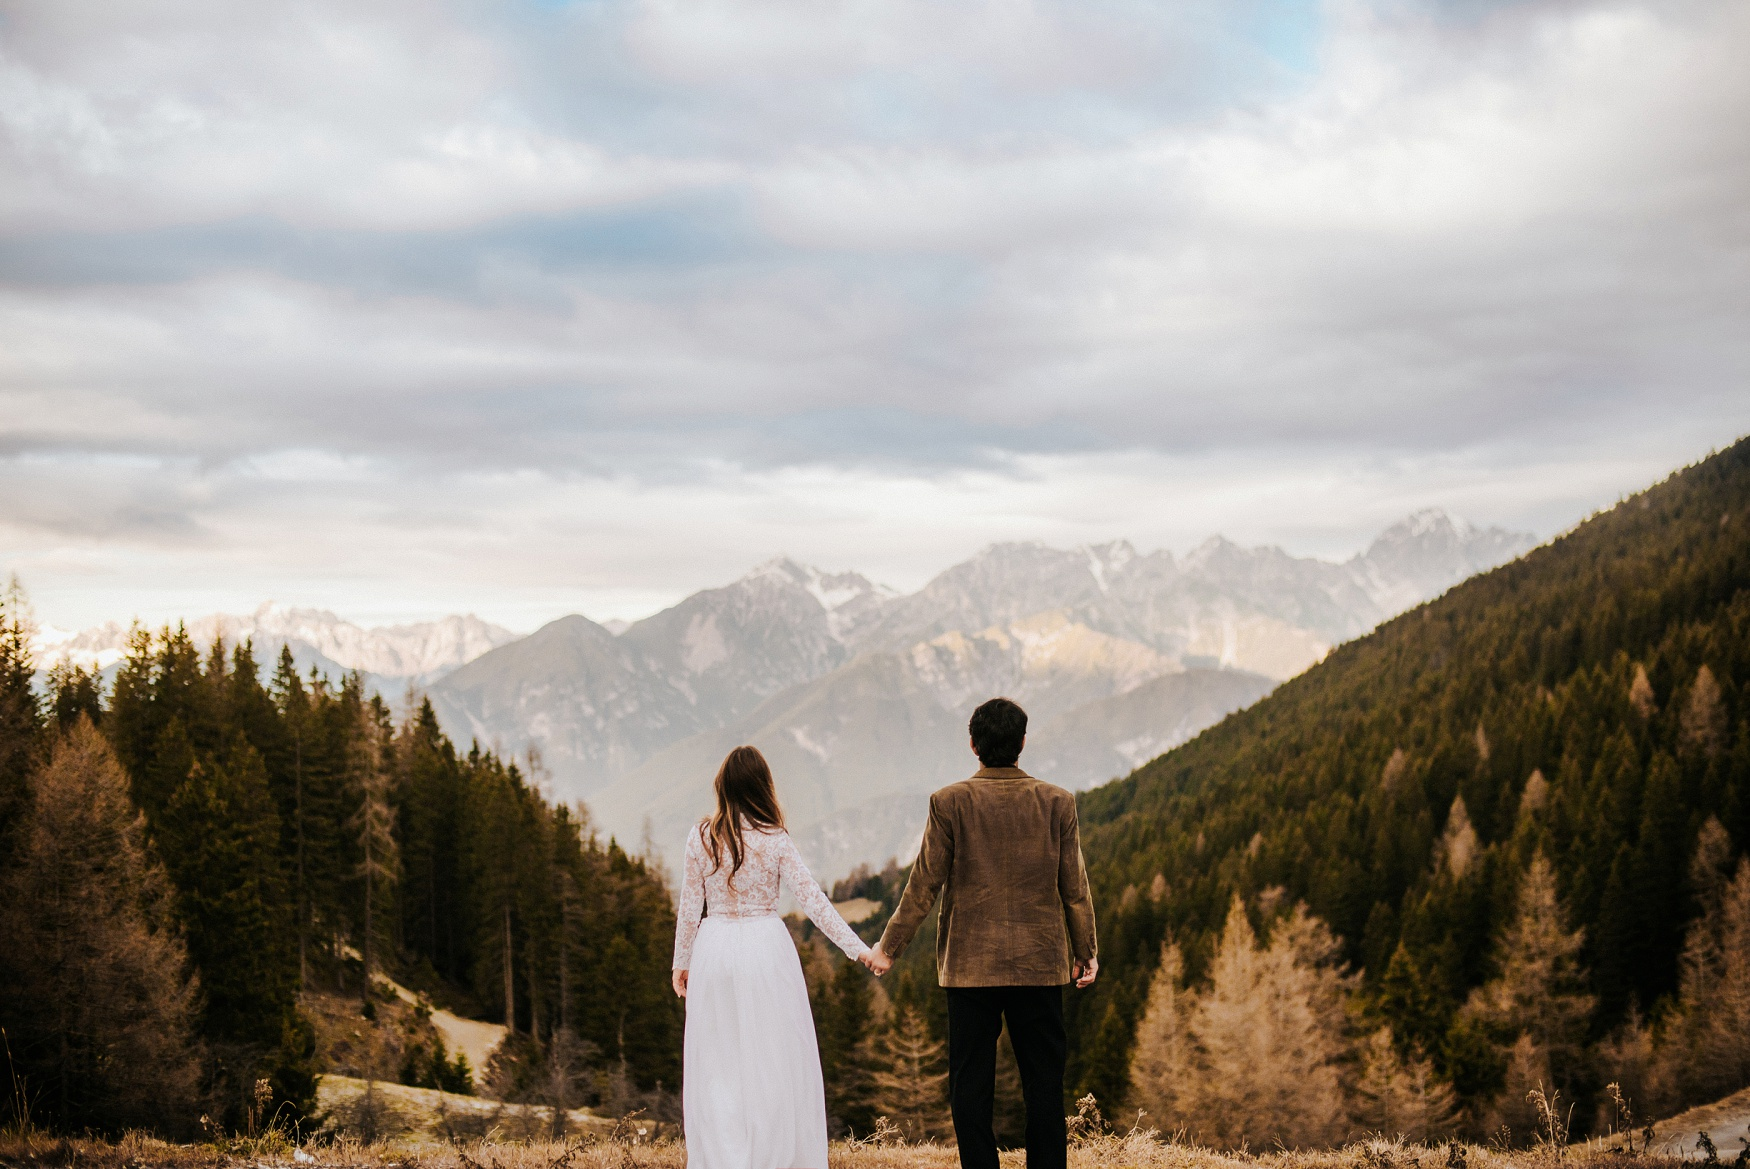 bestof2016_084 mountain wedding in austrian alps.jpg